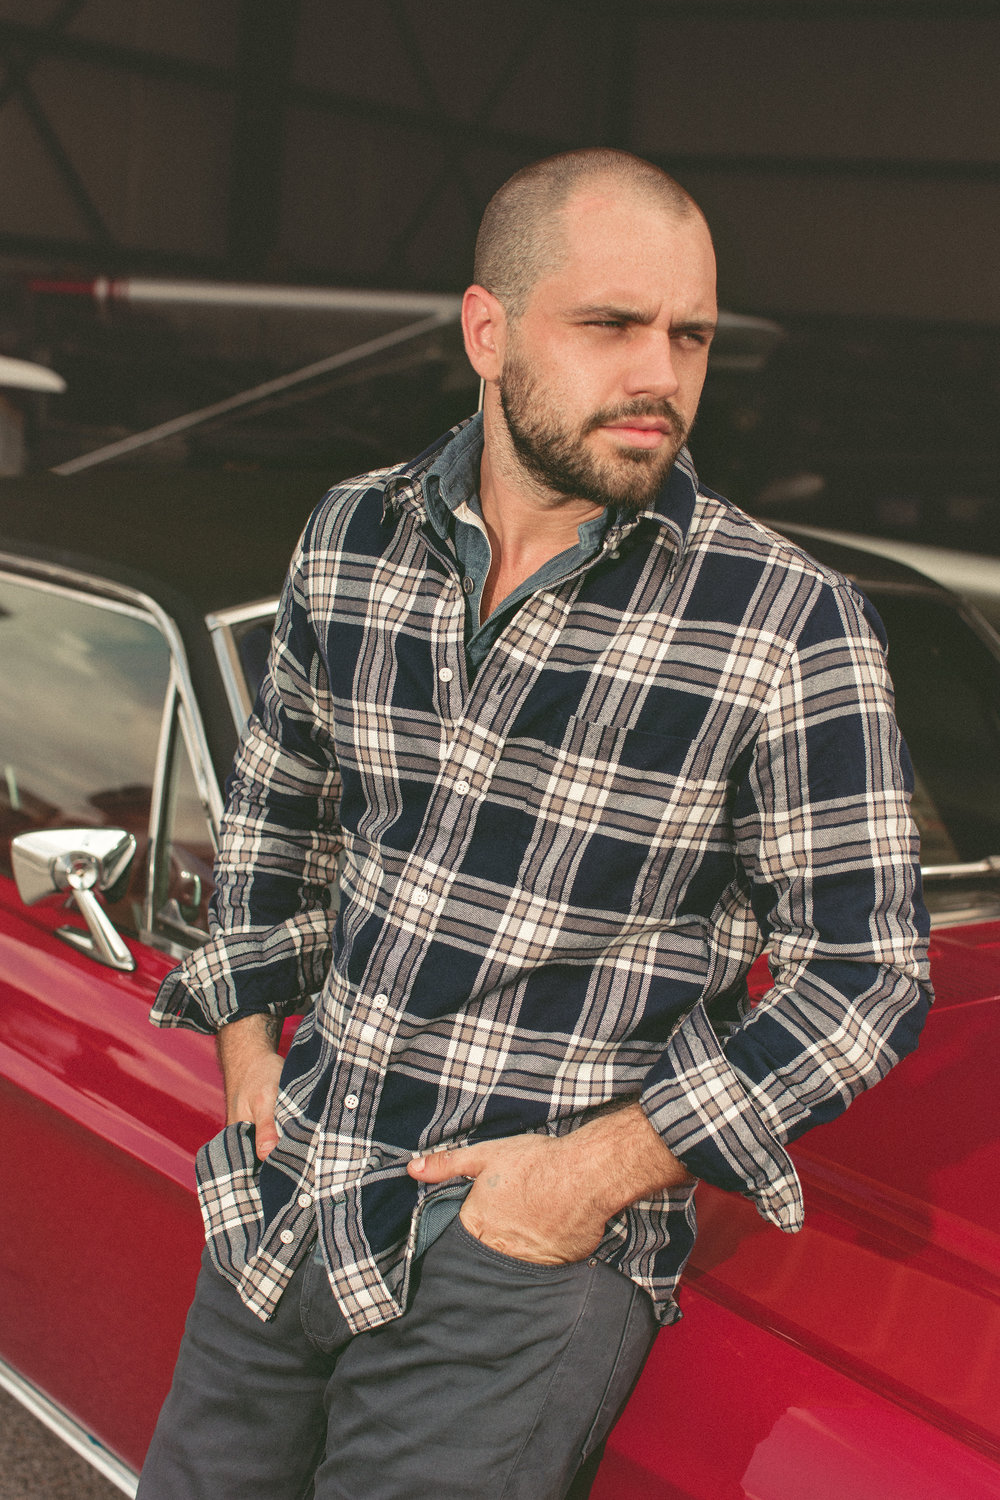 Male model in plaid shirt leaning against vintage mustang